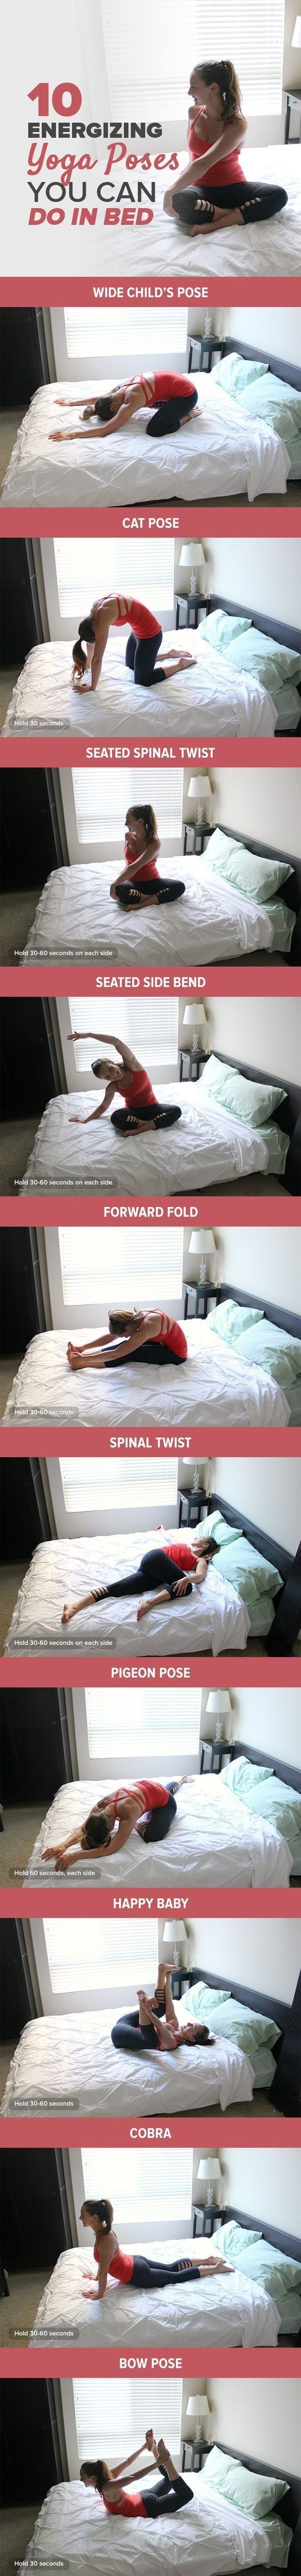 #Every #morning, #start your #day with this #morning #yoga #routine to #energize your #body and #jolt you #awake #faster than any #latte. The #best #part? You #don't even have to #leave your #bed!